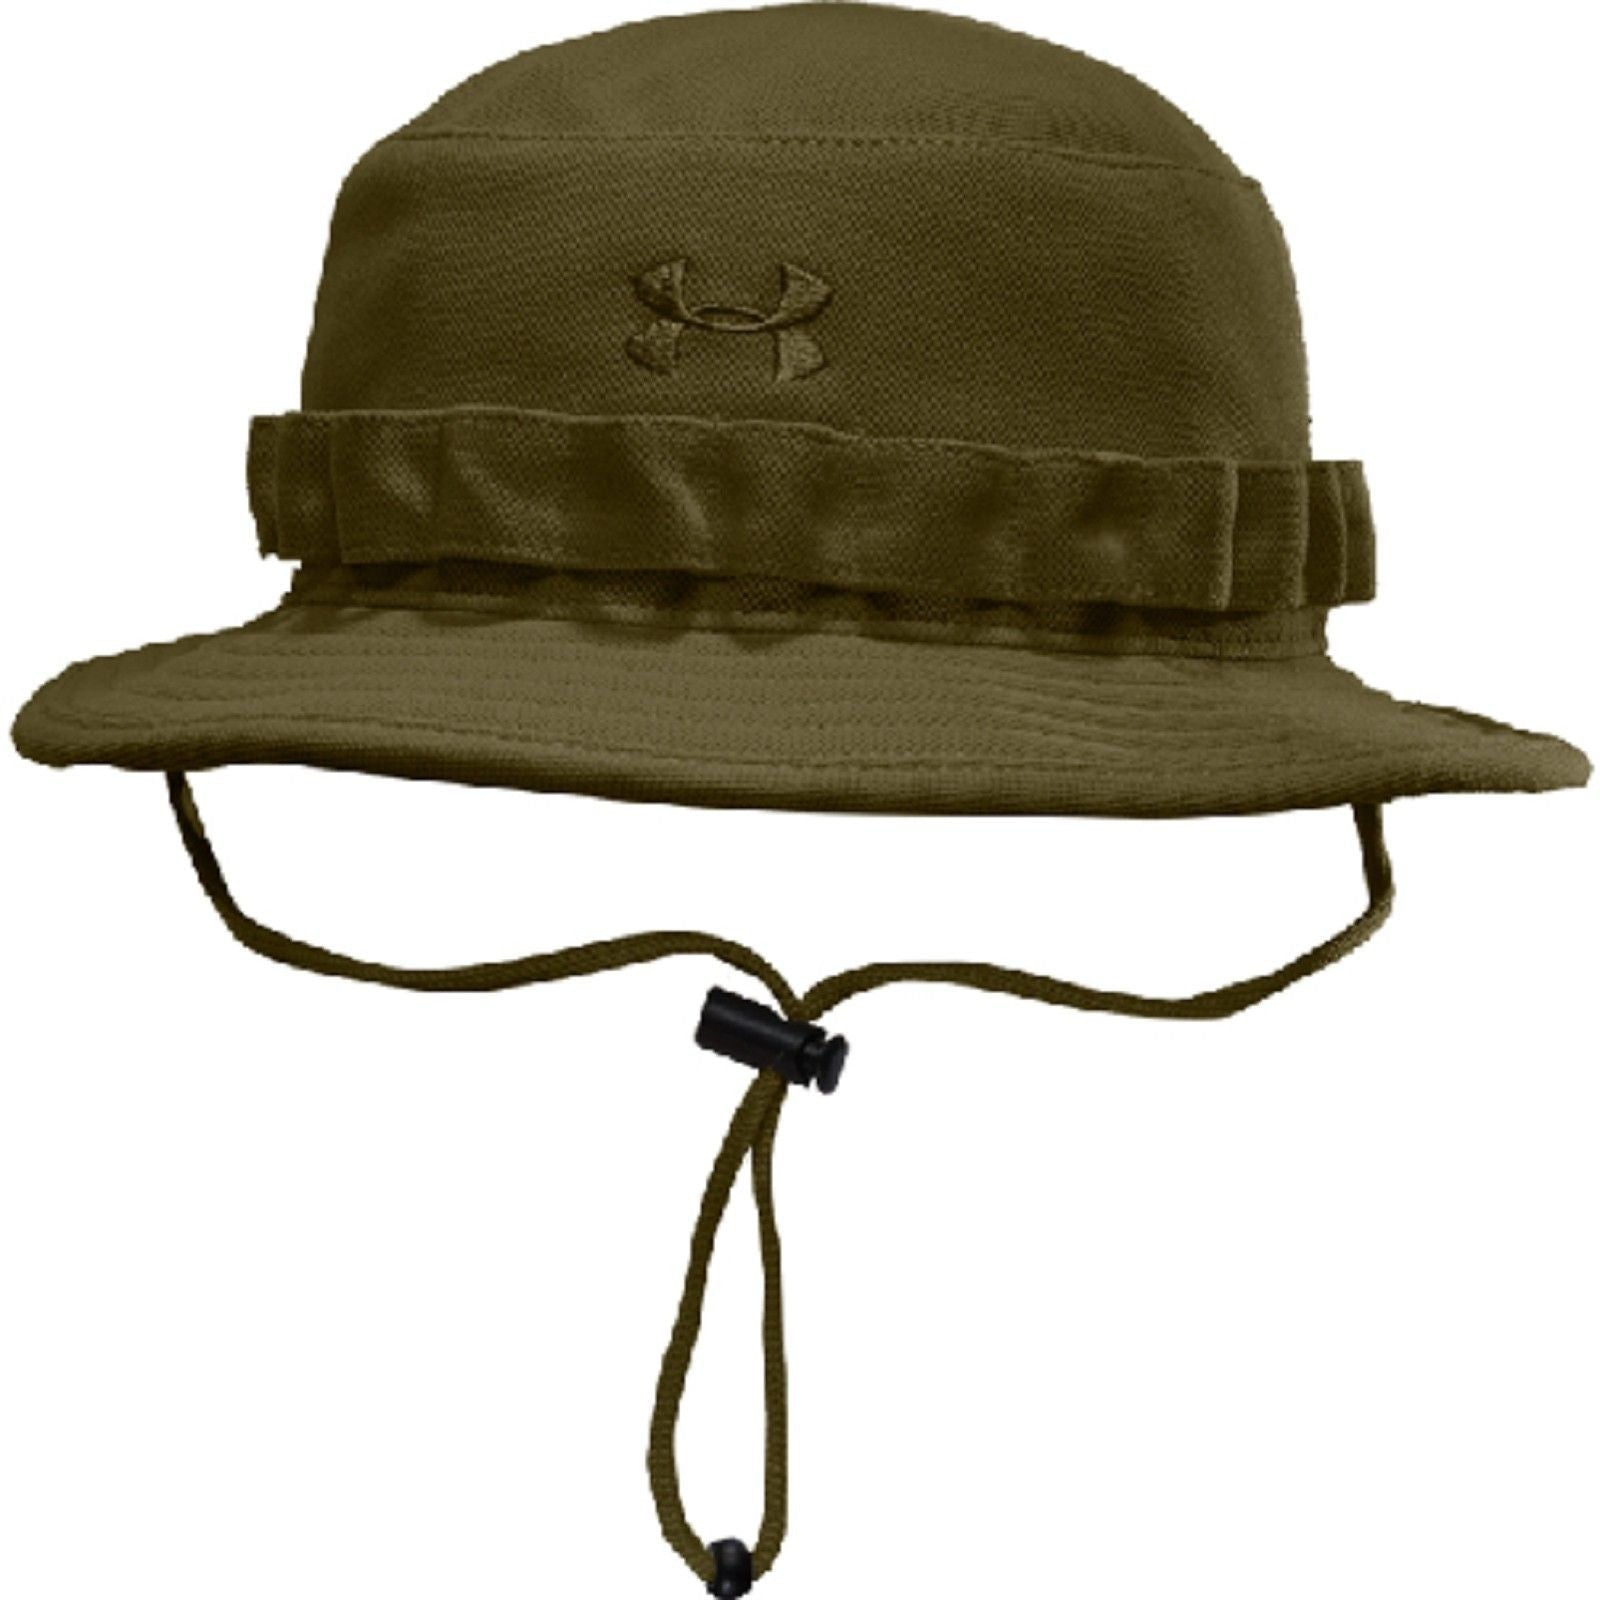 7ab641f30 Men's Under Armour Tactical Bucket Hat - Black or OD Boonie Hats UA ...